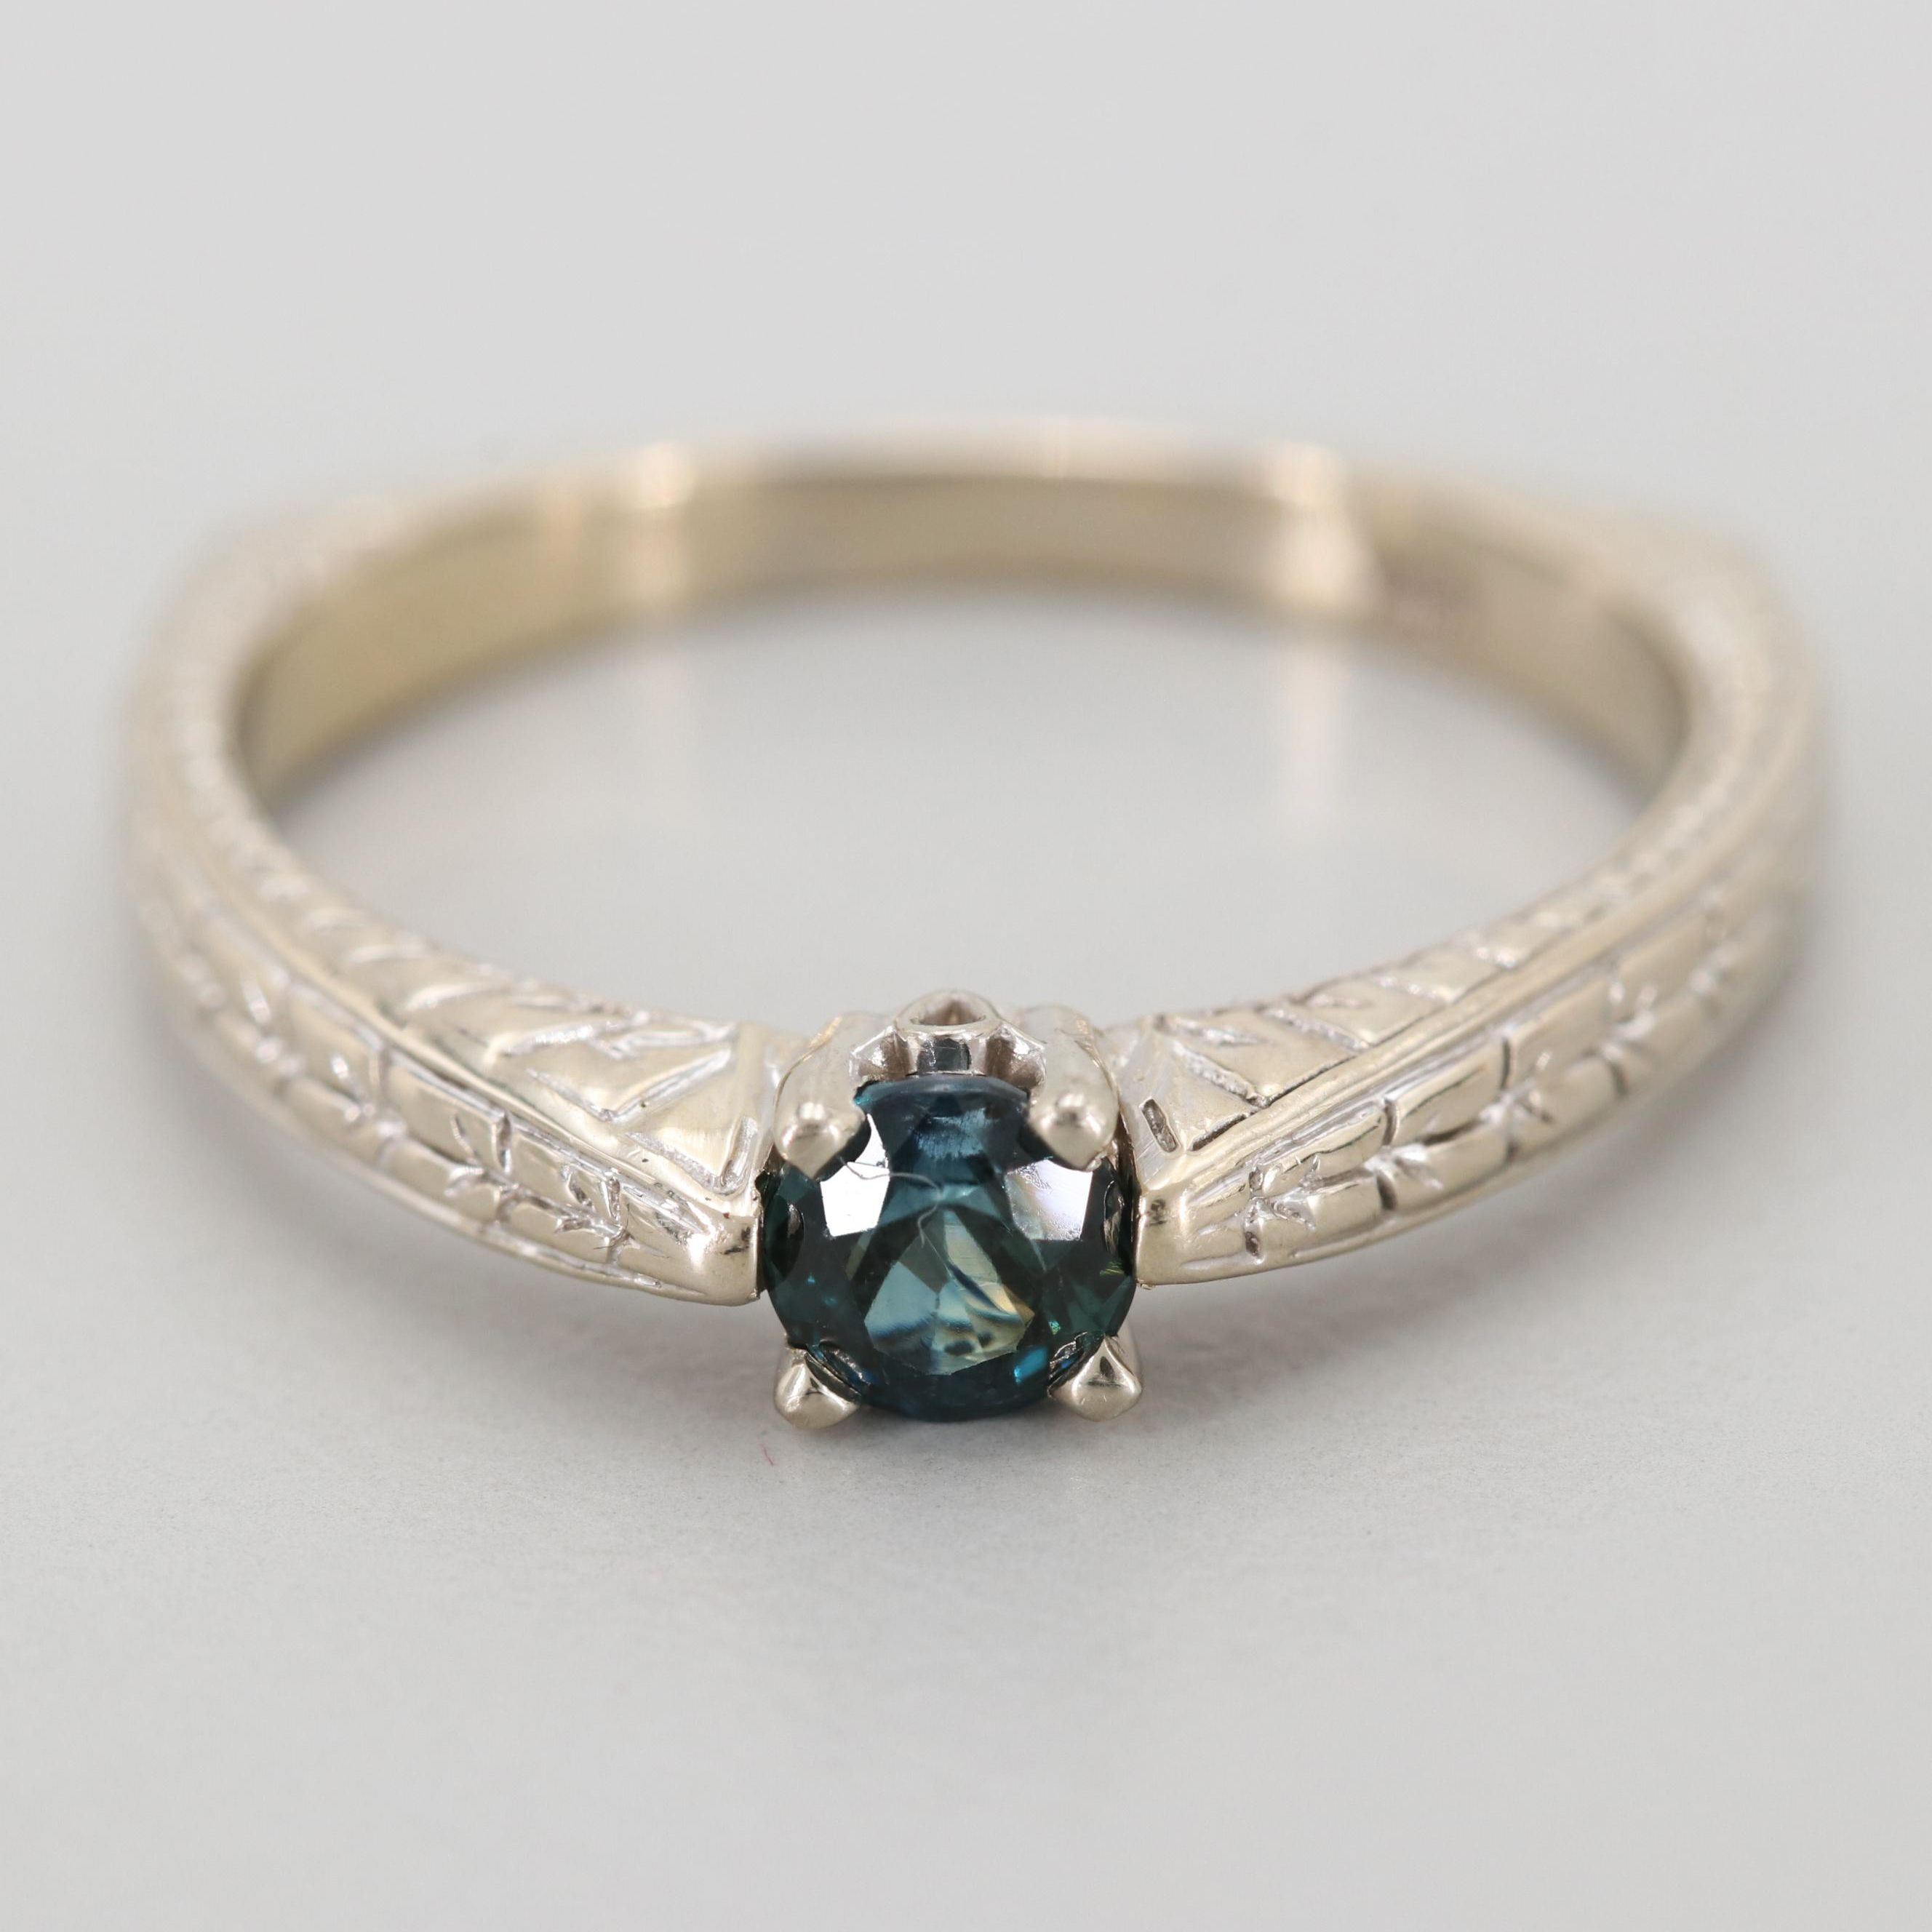 14K White Gold Blue Sapphire Solitaire Ring